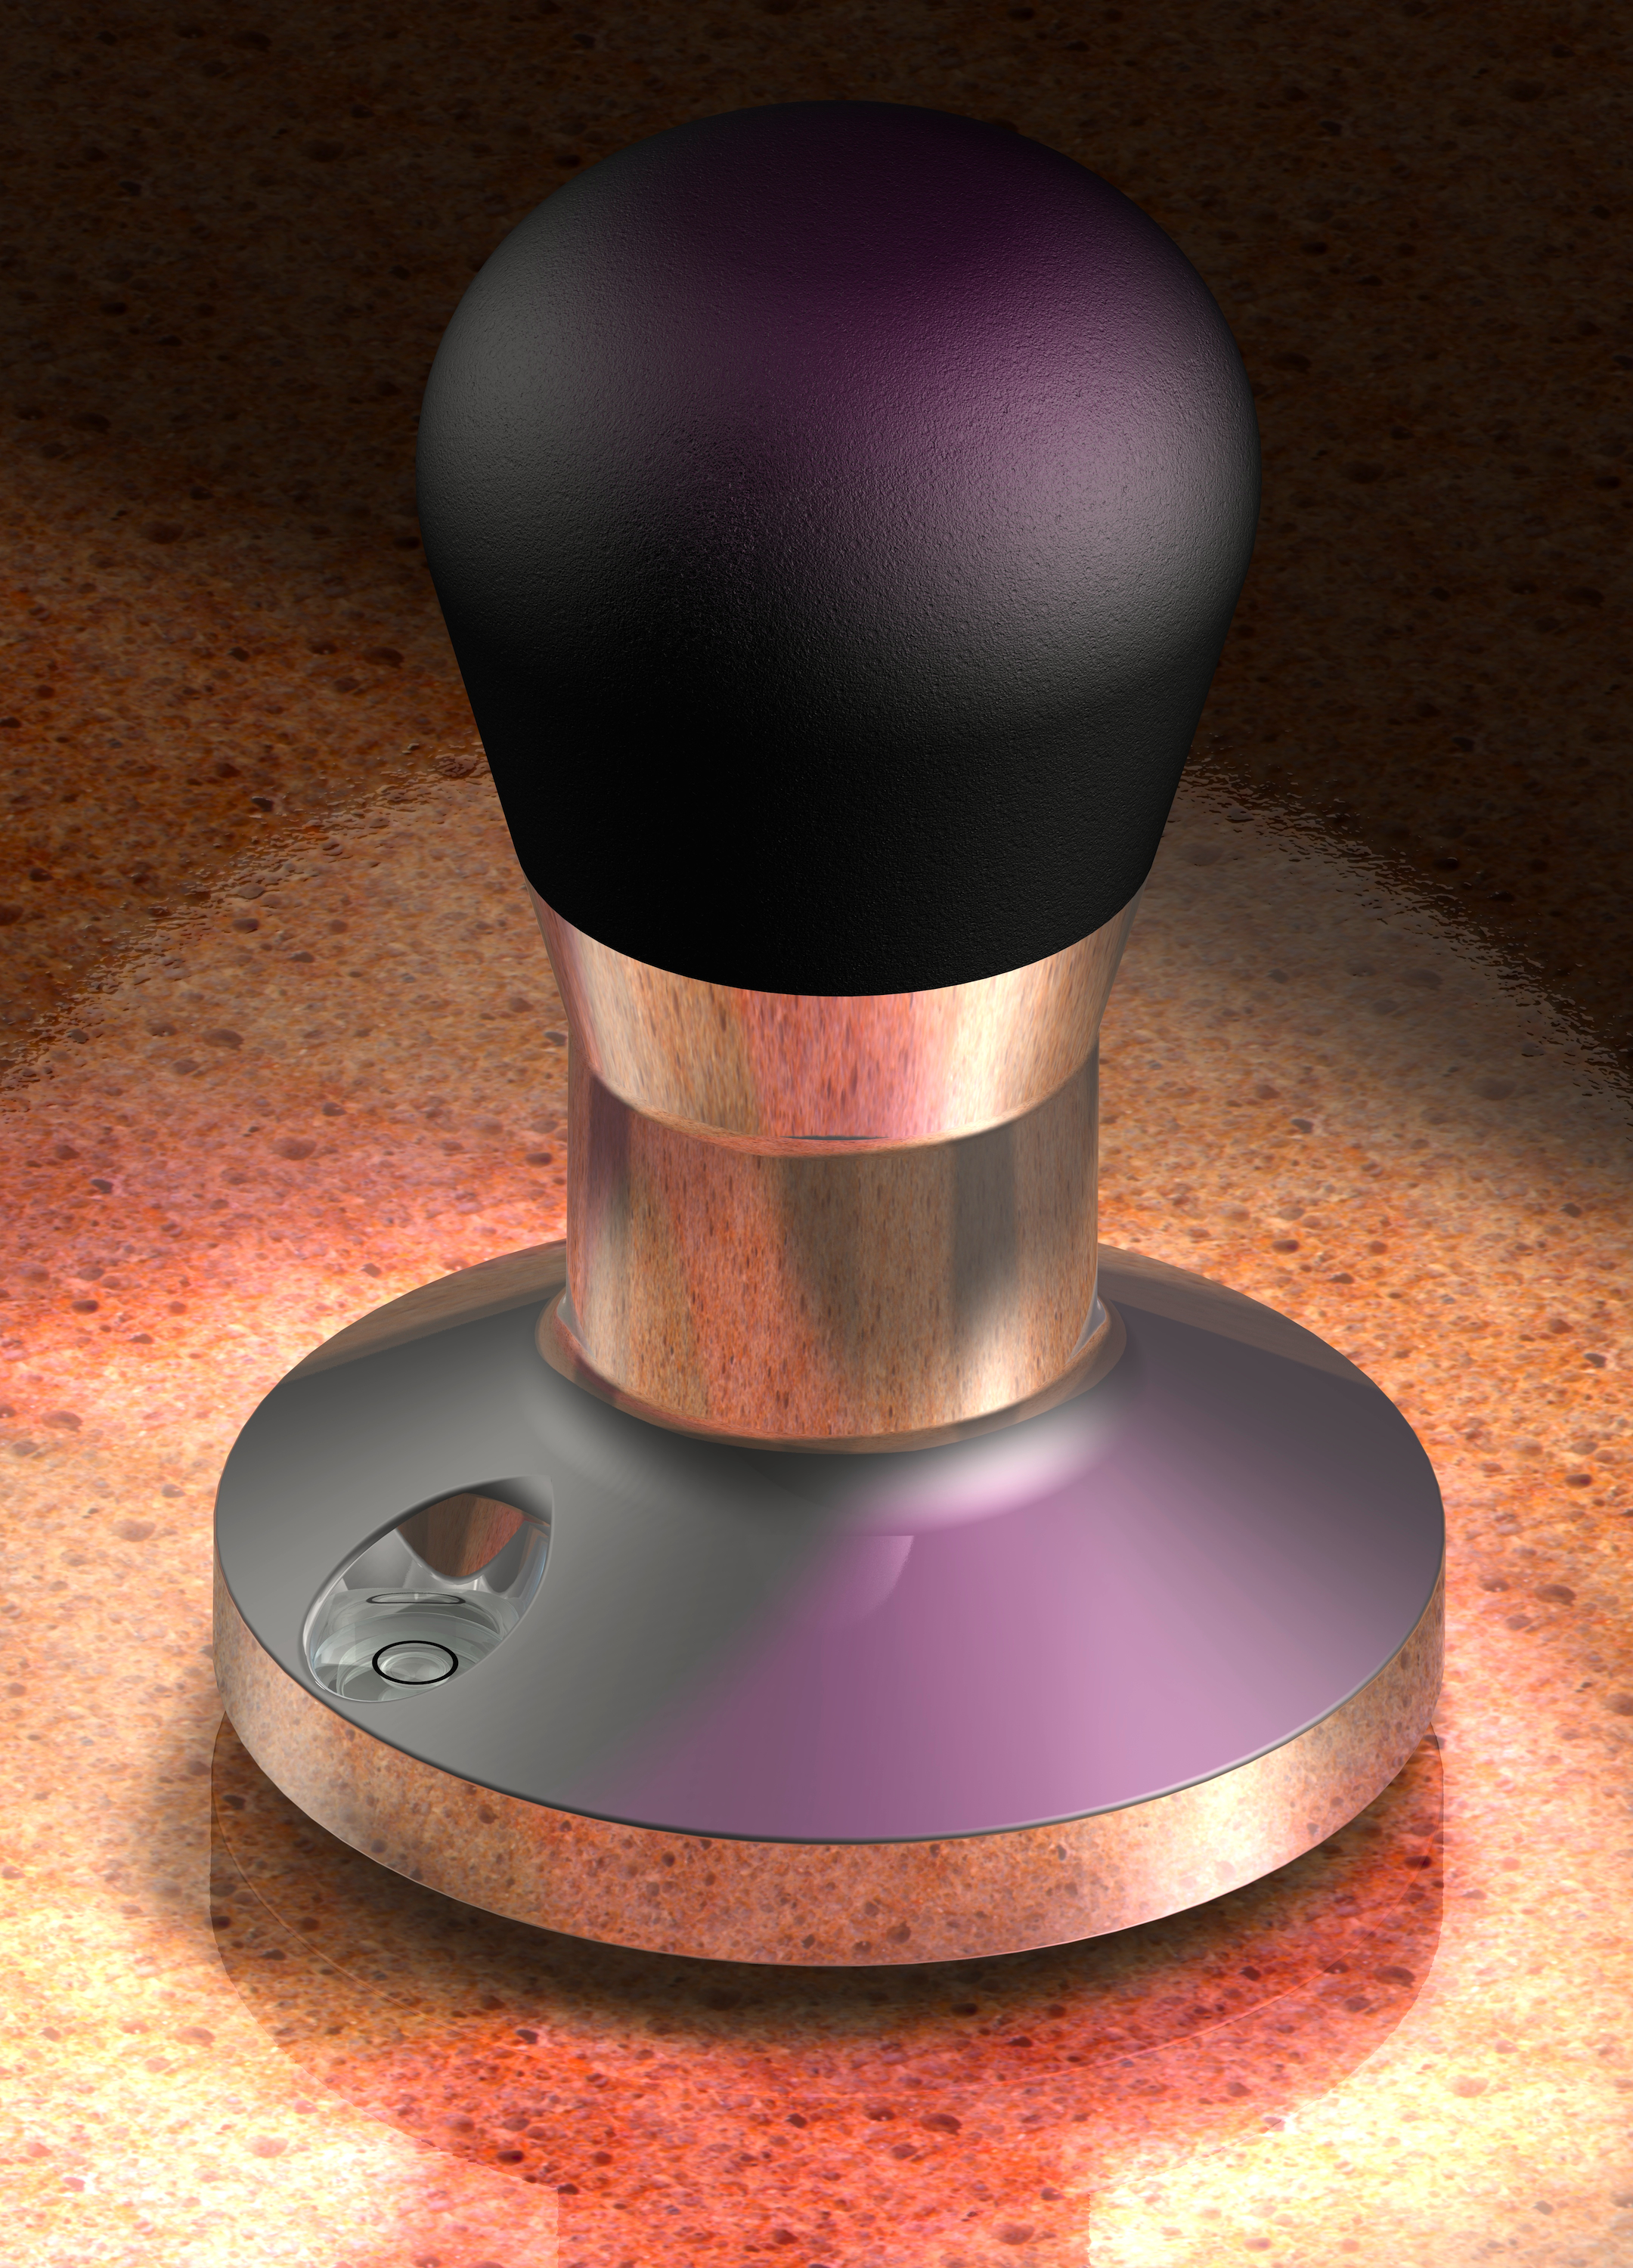 File:Cobalt ray-tracing, high-end coffee tamper.jpg - Wikipedia